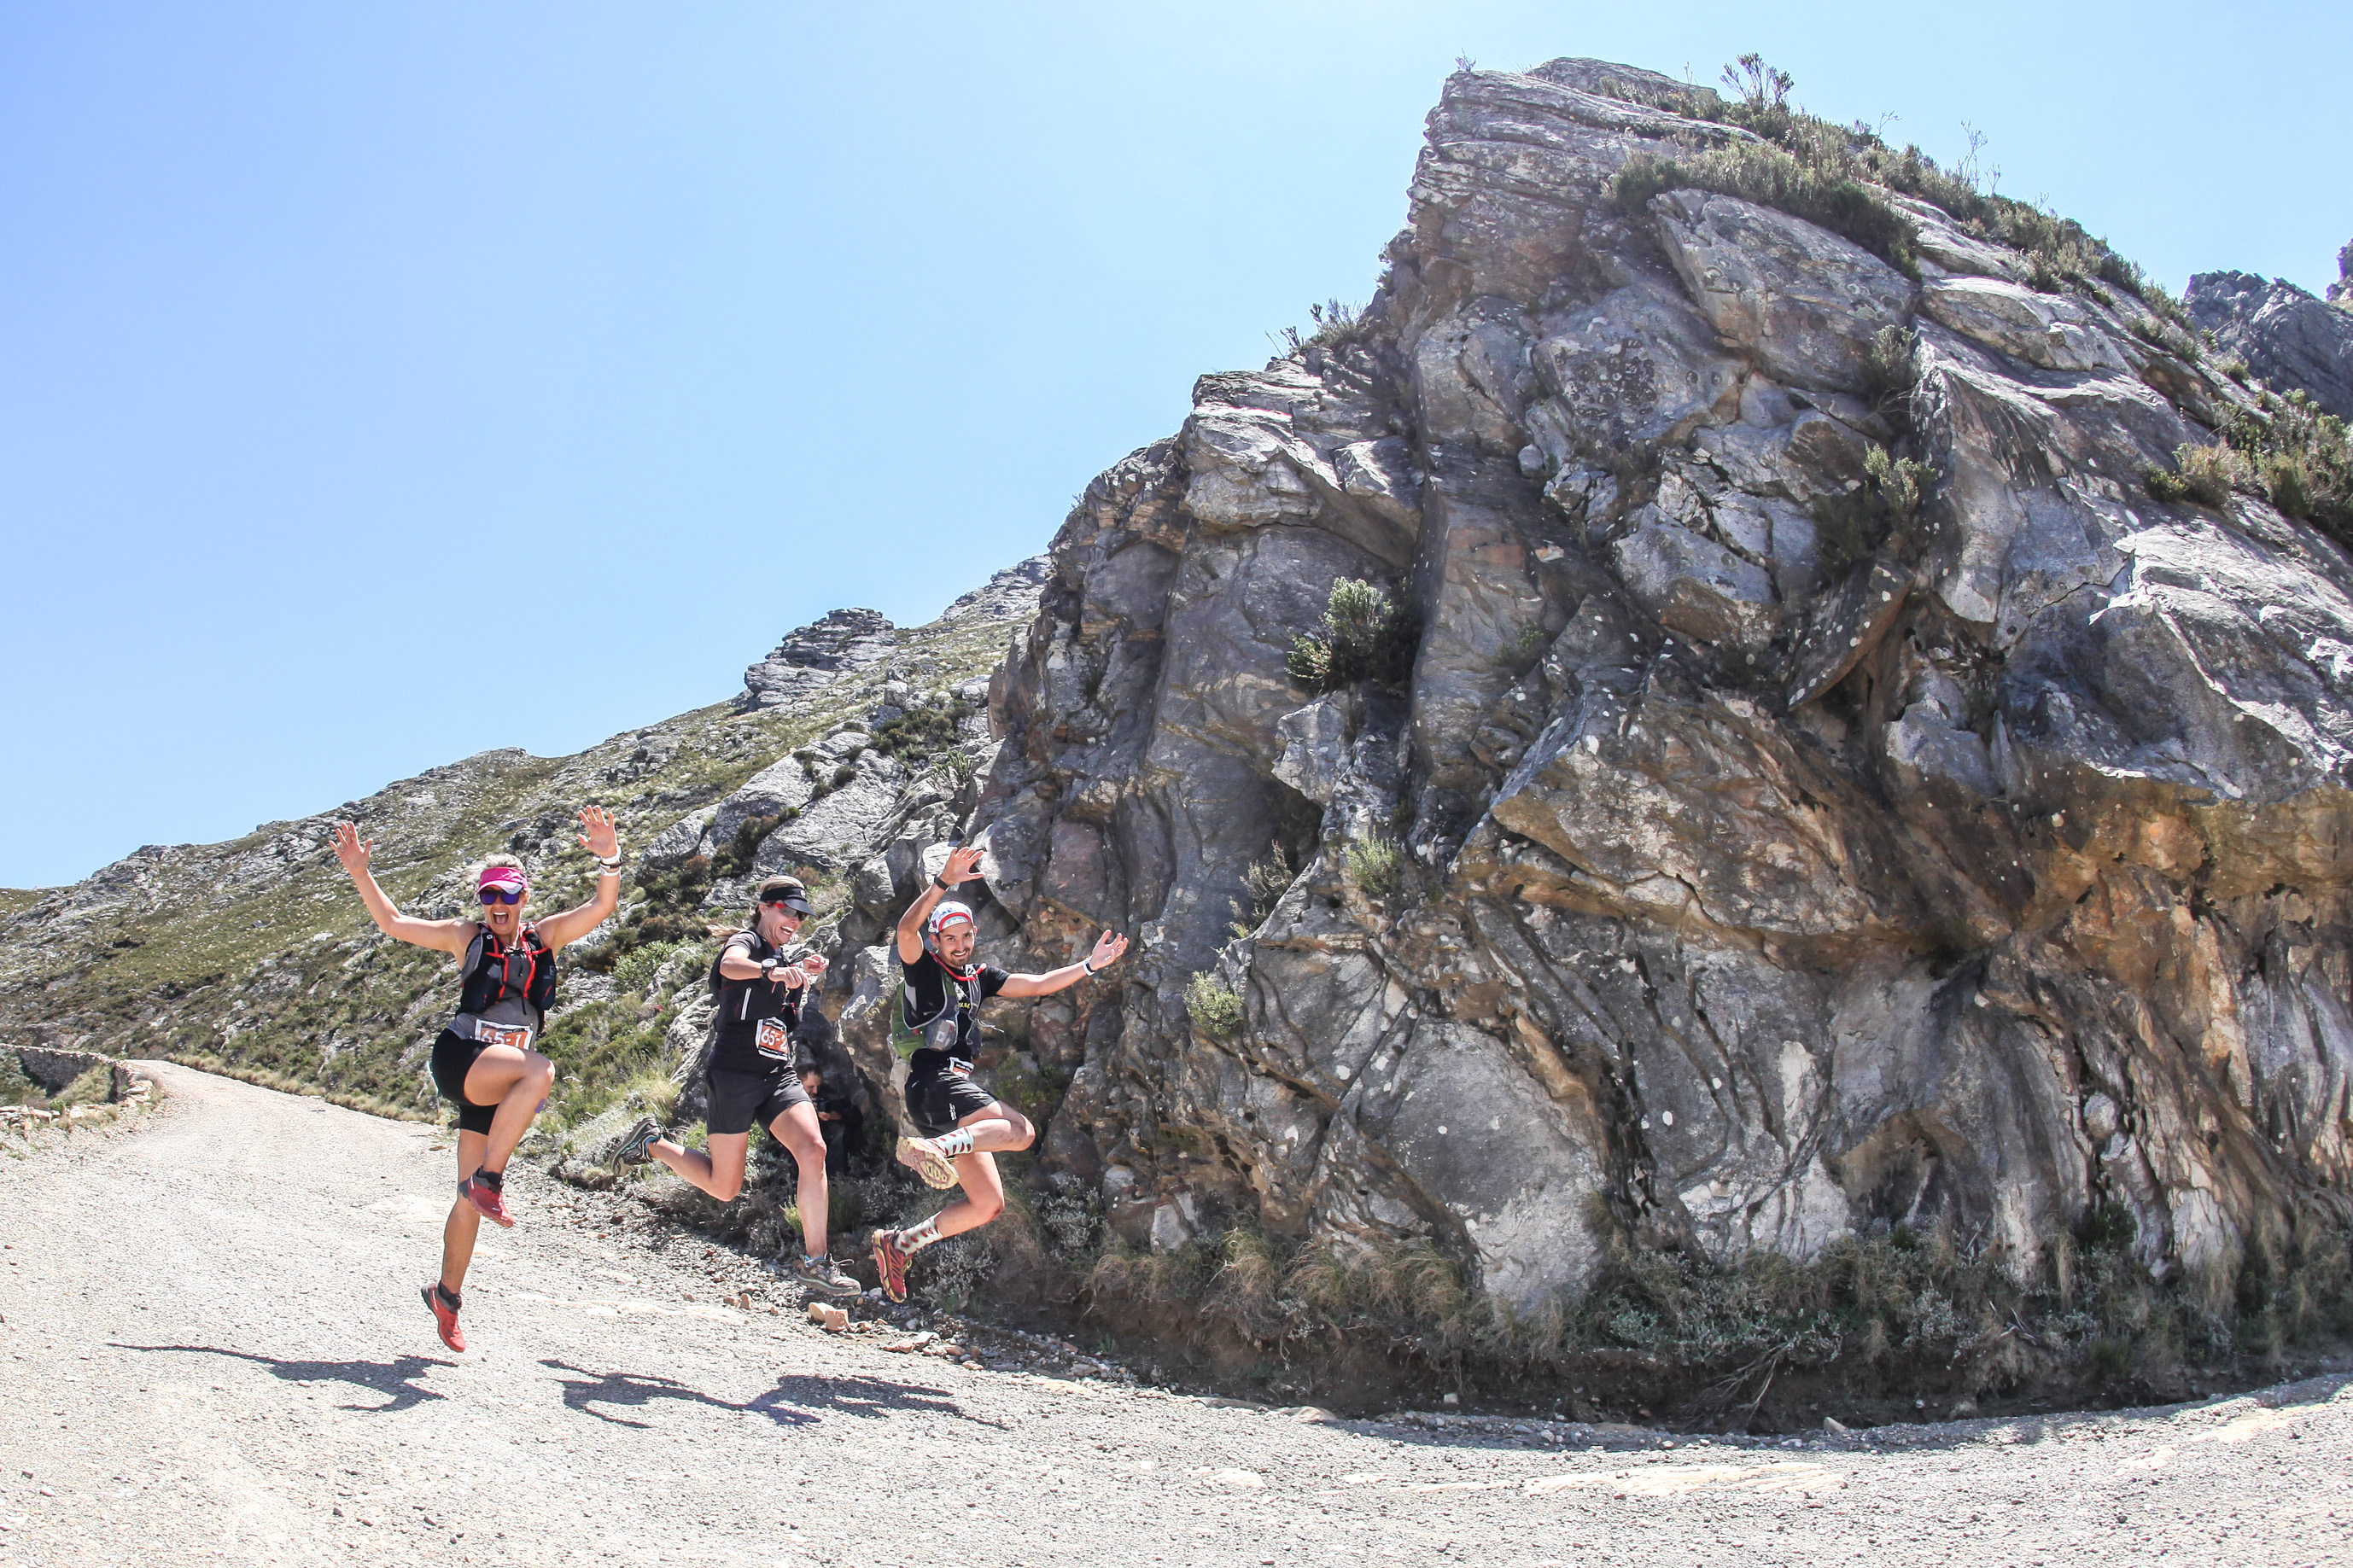 Trail runners jump for joy as they descend the Swartberg Pass towards the stage finish at Kobus se Gat. Photo by Oakpics.com.